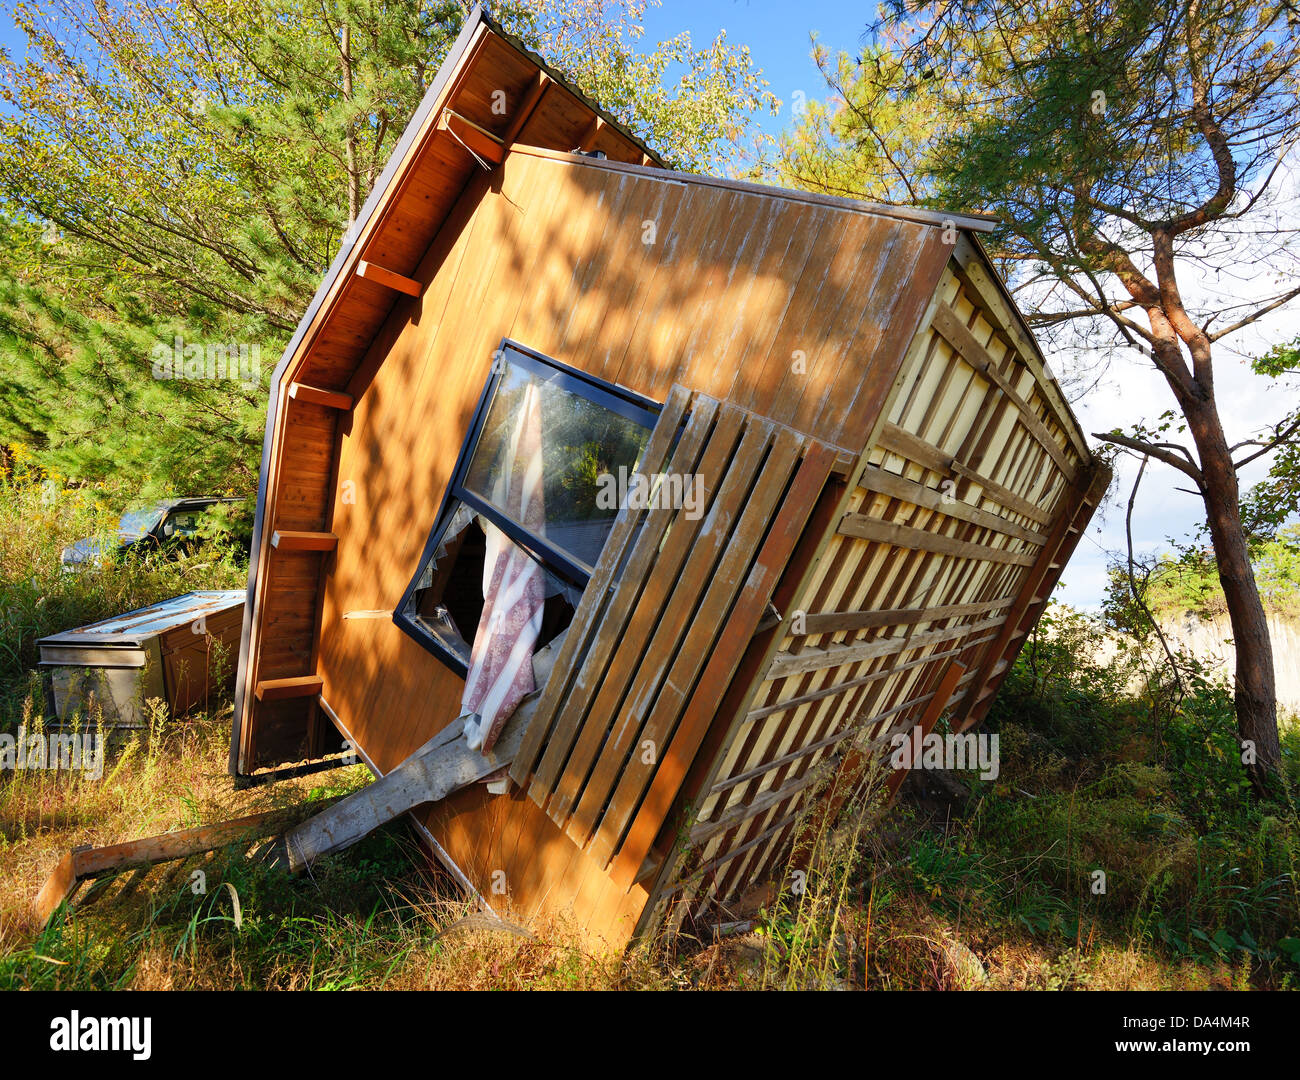 Overturned house, damed in the 2011 Tōhoku earthquake and tsunami located in Matsushima, Japan. - Stock Image